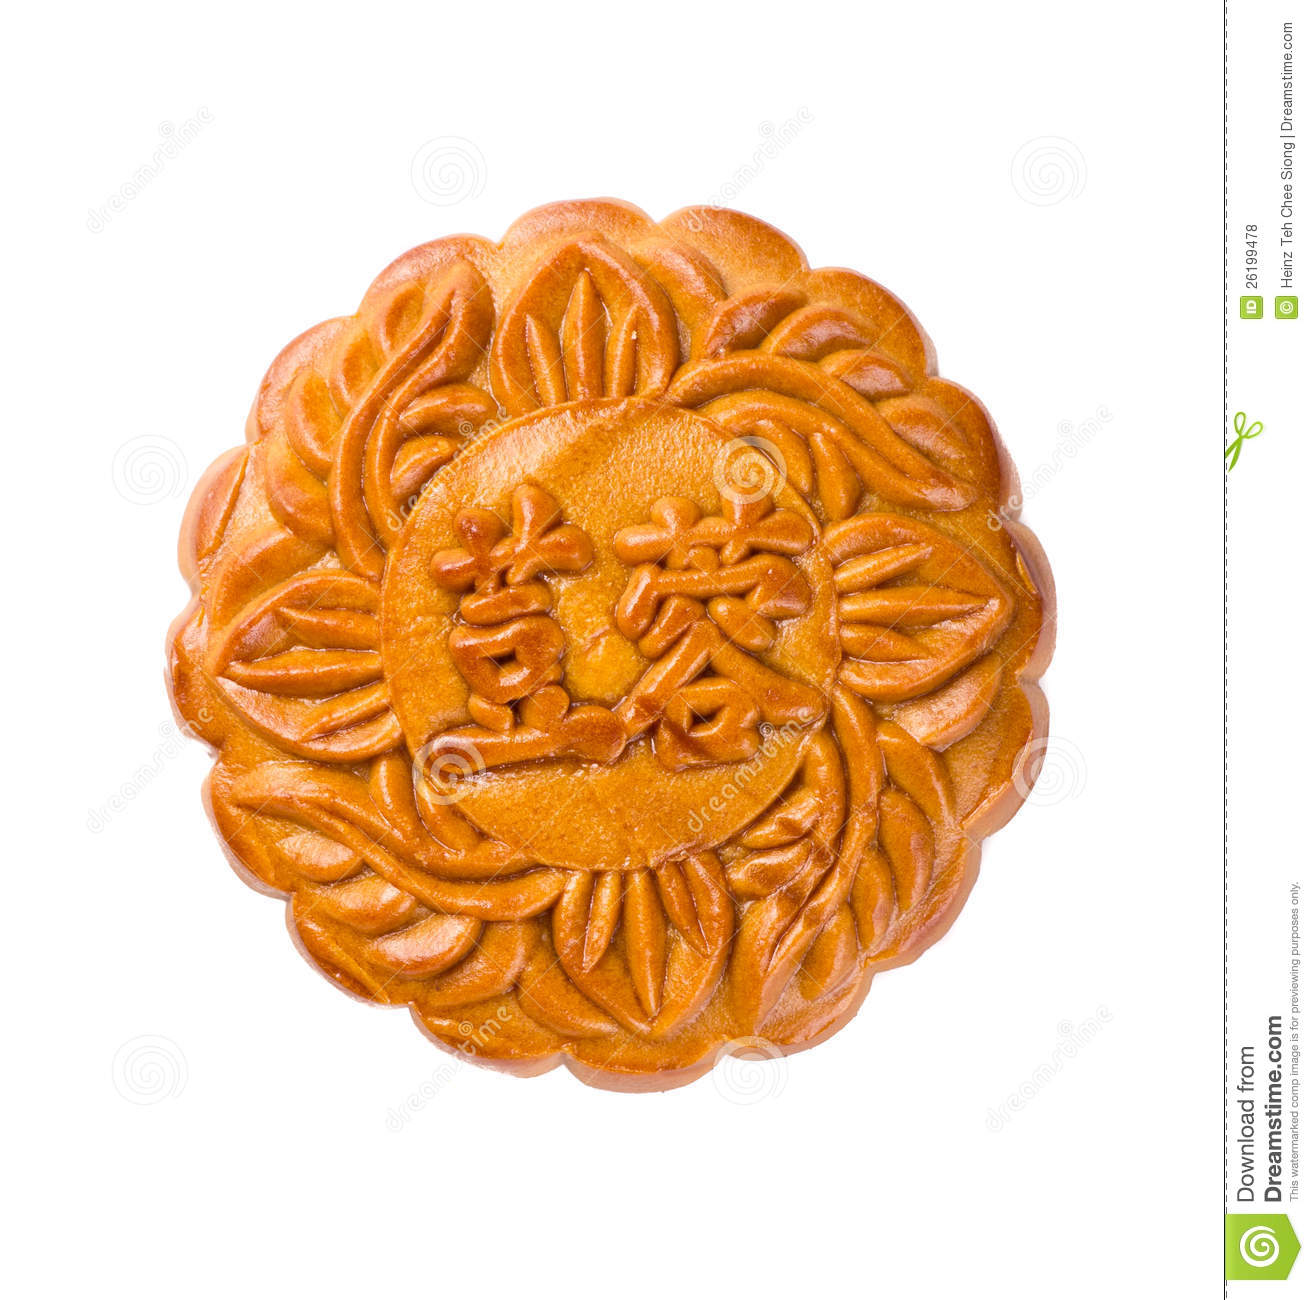 ... , the Chinese words on the mooncake is not a logo or trademark